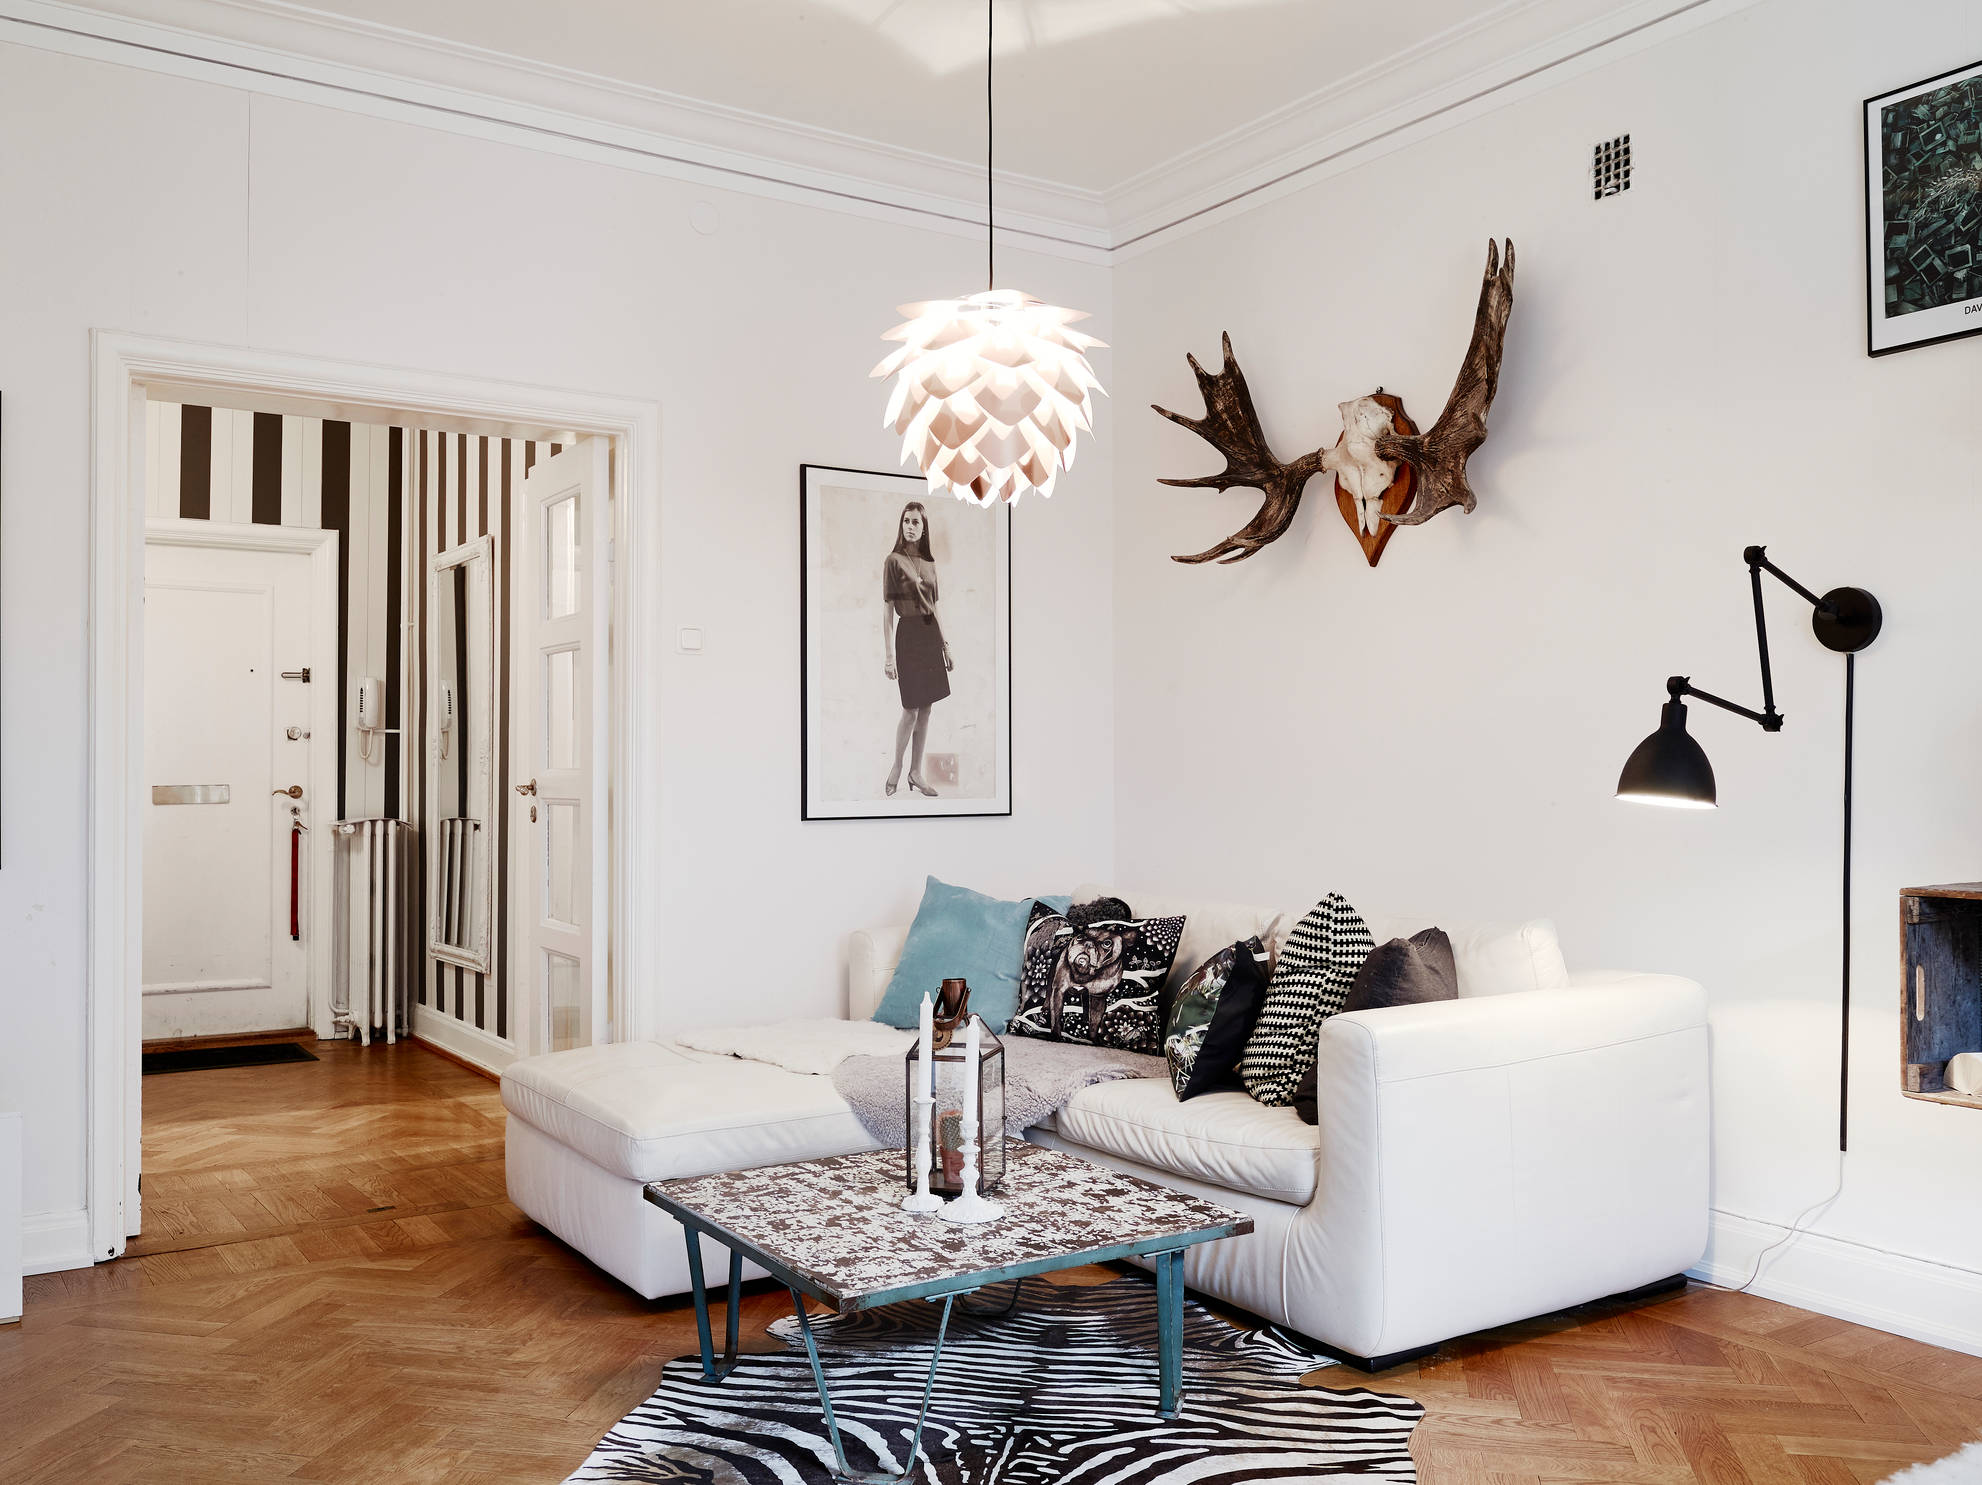 Living room with different angles and lines  COCO LAPINE DESIGNCOCO LAPINE DESIGN